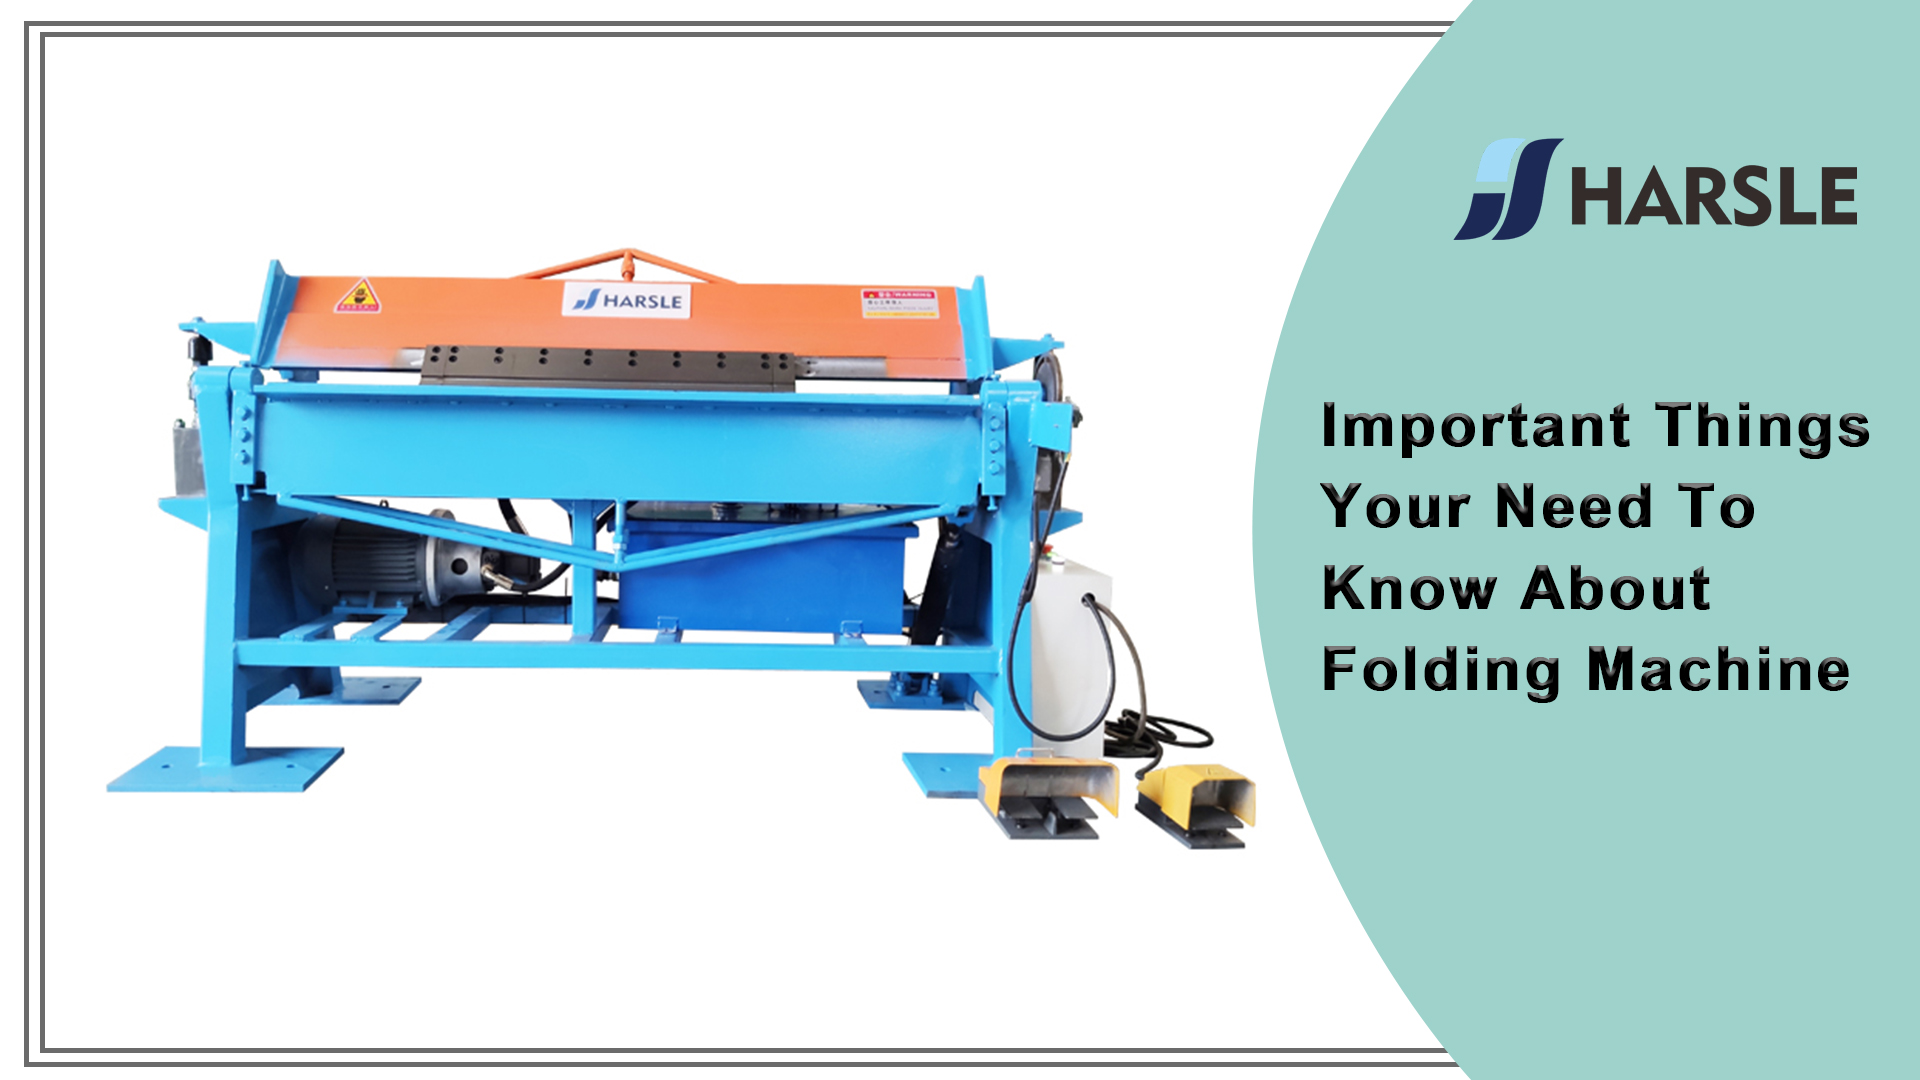 Important Things Your Need To Know About Folding Machine